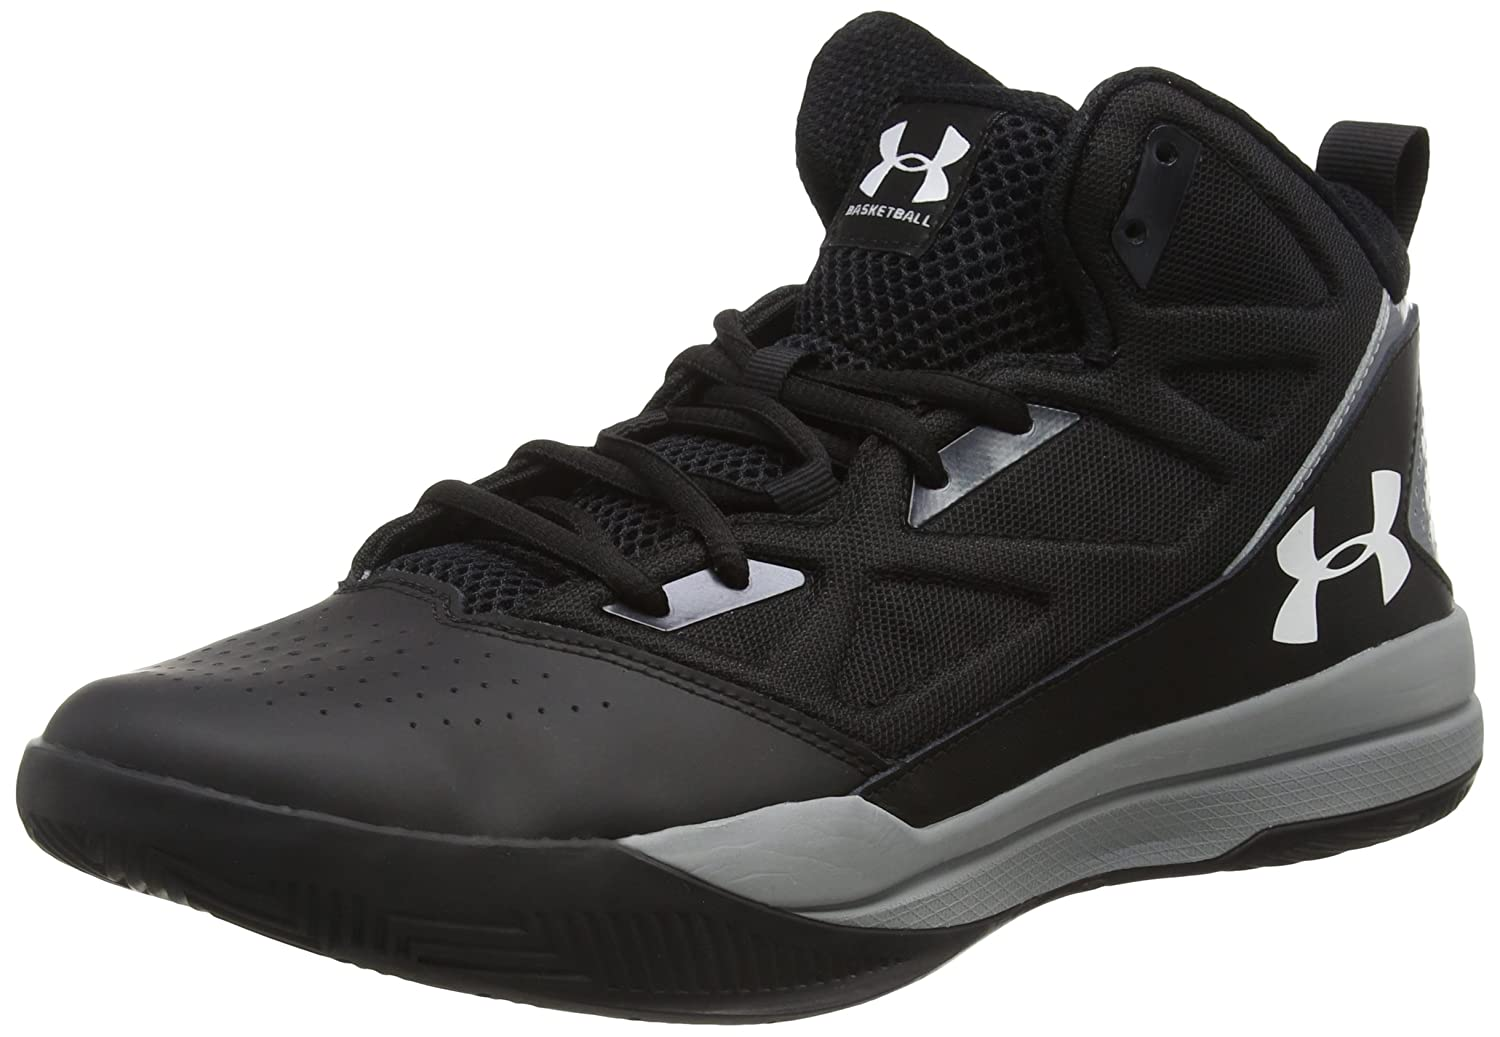 Under Armour Men's Jet Mid Basketball Shoe, Black/Steel/White B0182NEYY4 11.5 D(M) US|Black (001)/Steel